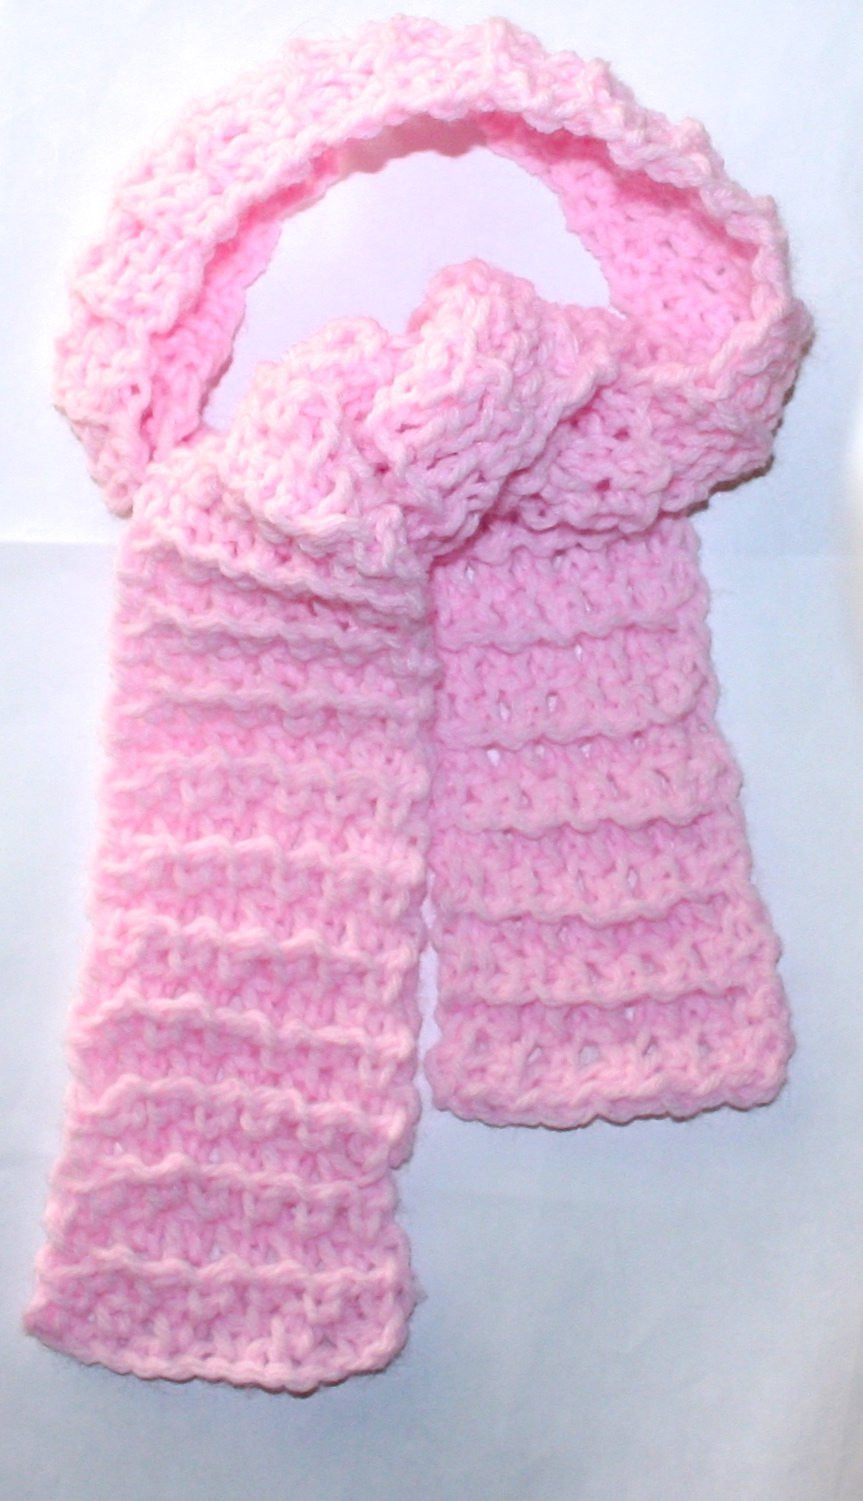 Awesome Child Baby Crochet Scarf Pattern 3 Sizes Boy Girl Baby toddler Child Scarf Crochet Pattern Of Top 41 Images Child Scarf Crochet Pattern